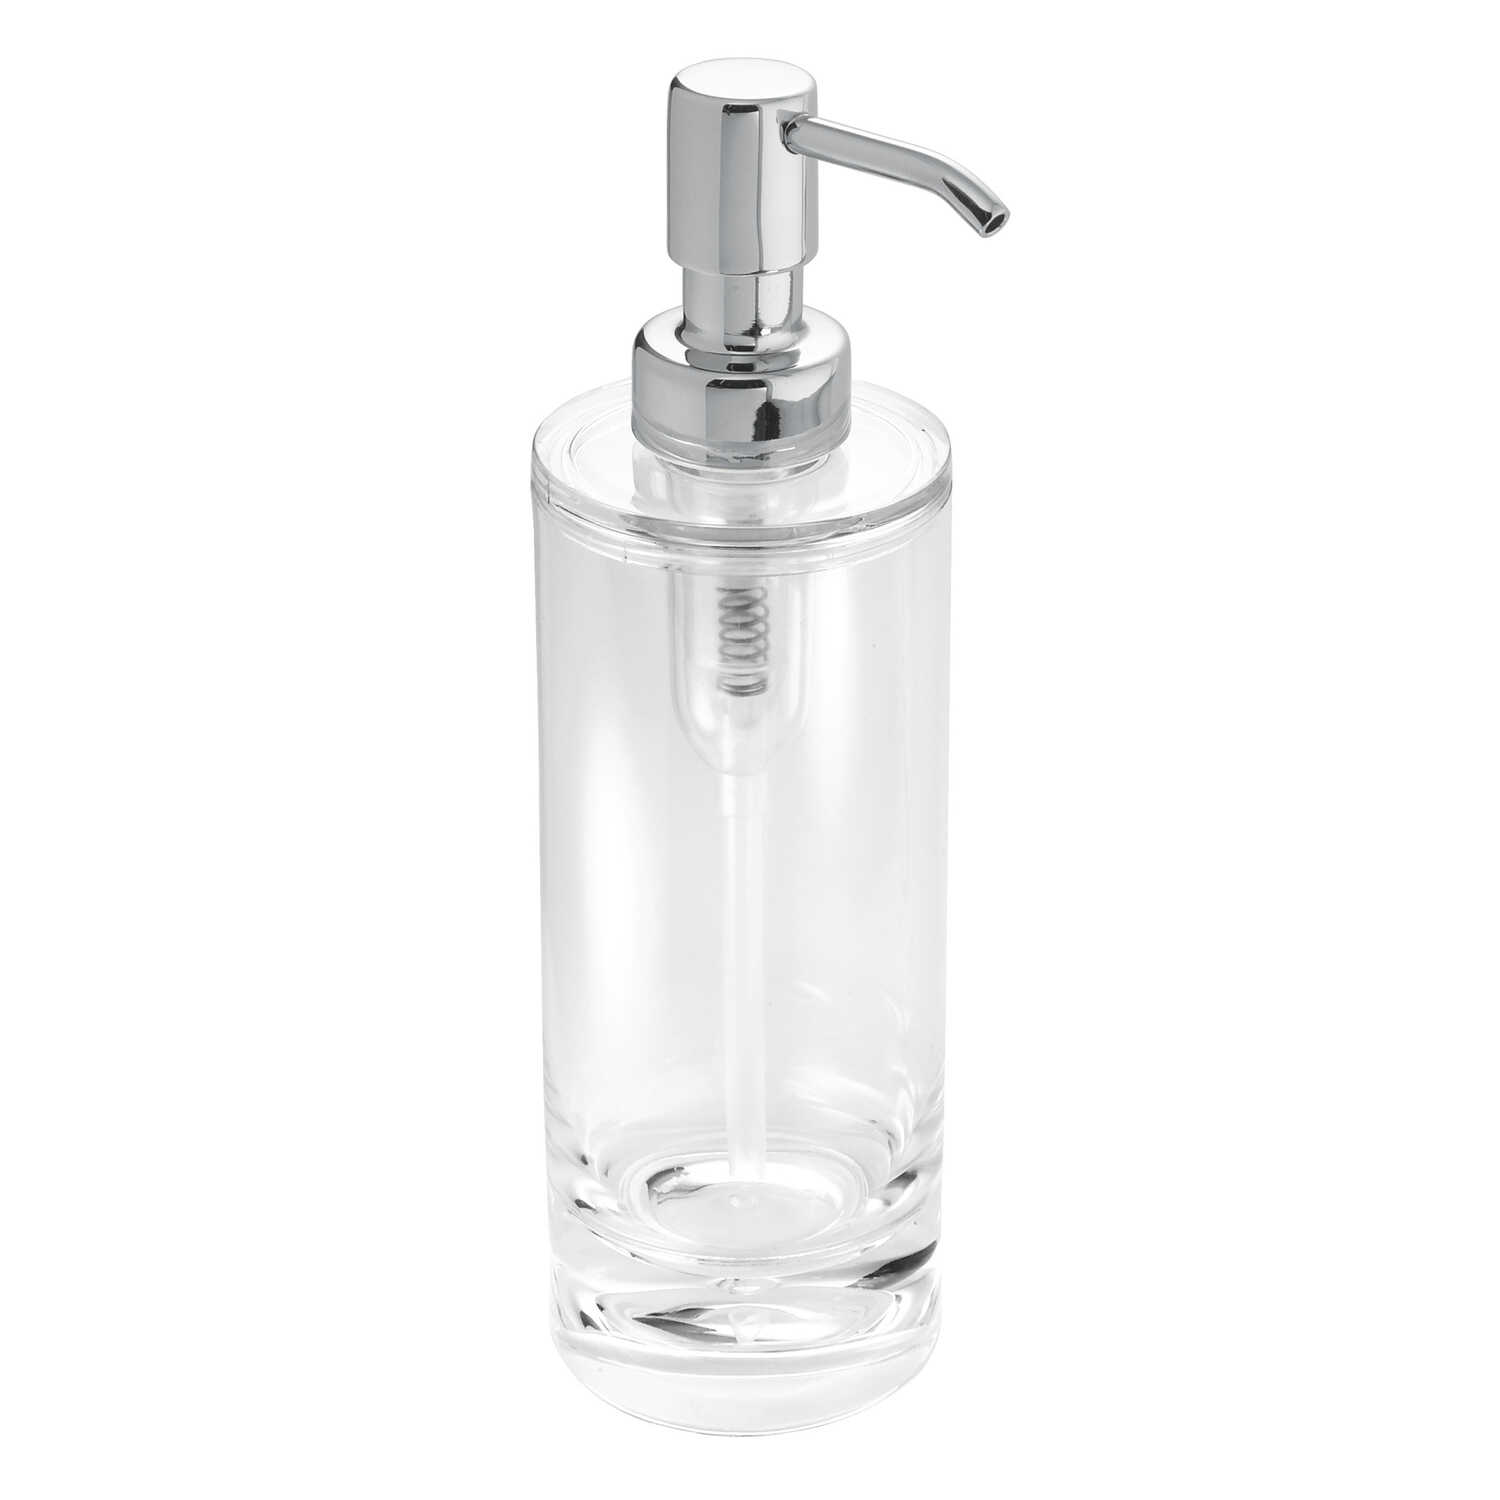 InterDesign  Eva Line  Lotion/Soap Dispenser  2-1/2 in. W x 2-1/2 in. L x 8 in. H Clear  Acrylic  Cl